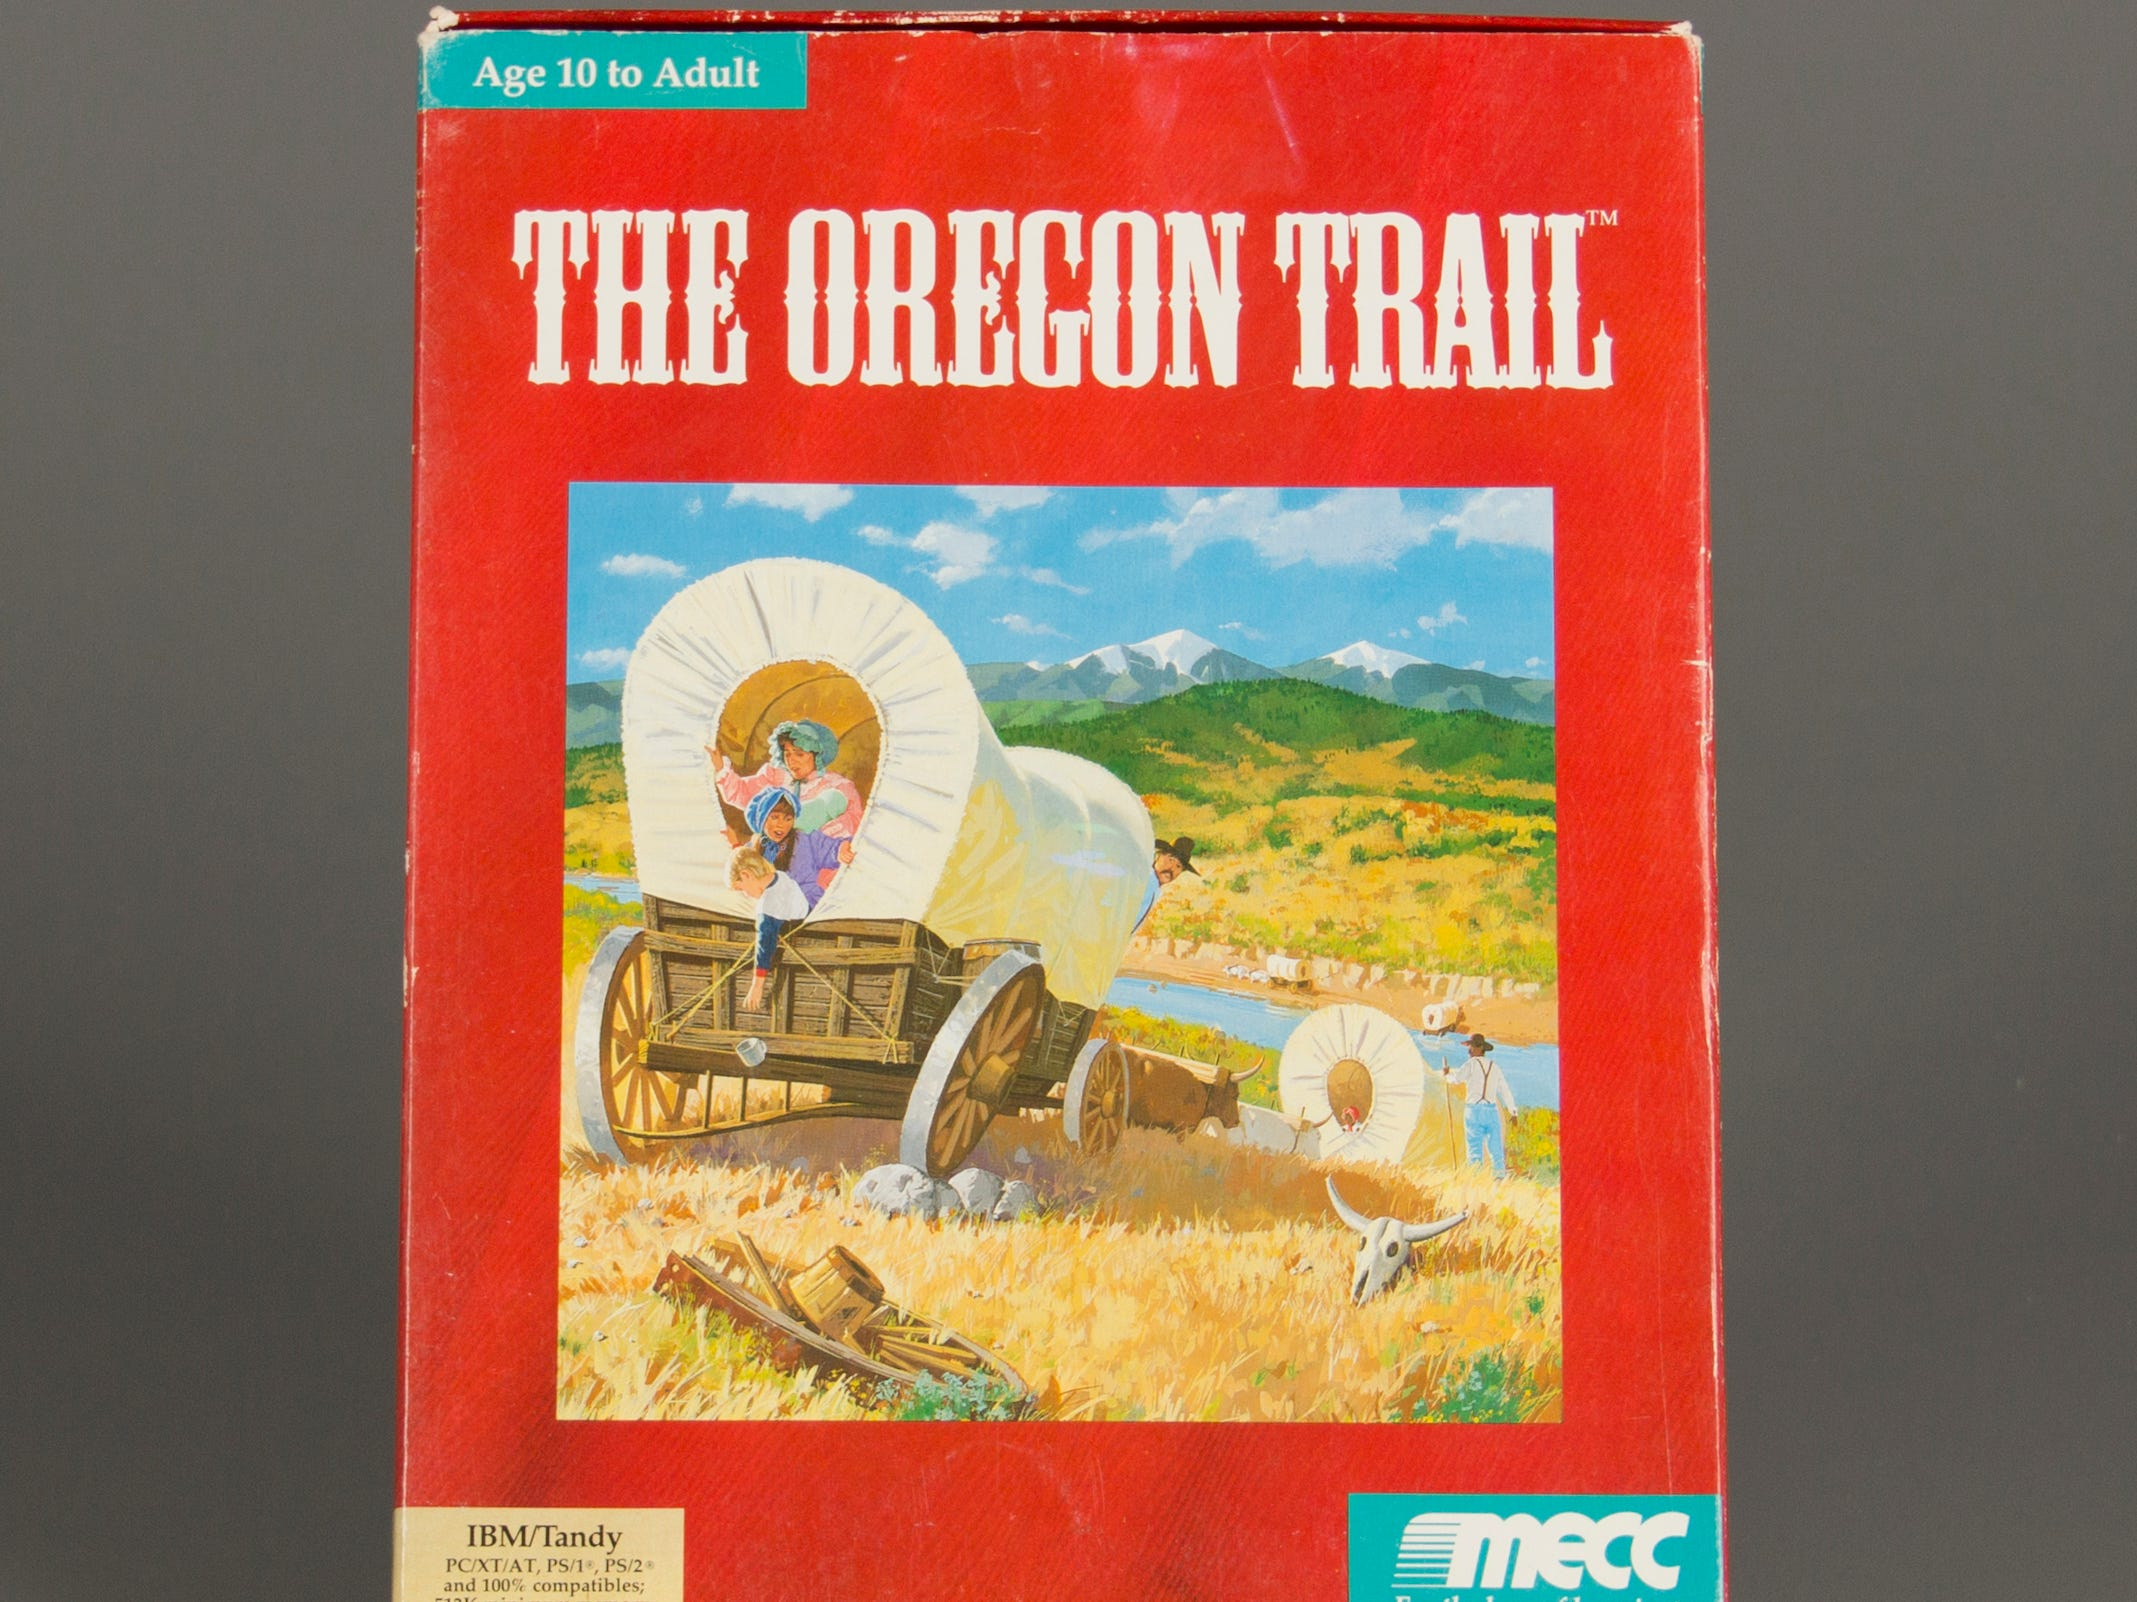 The Oregon Trail was inducted into the World Video Game Hall of Fame at The Strong National Museum of Play in Rochester, New York in 2016.